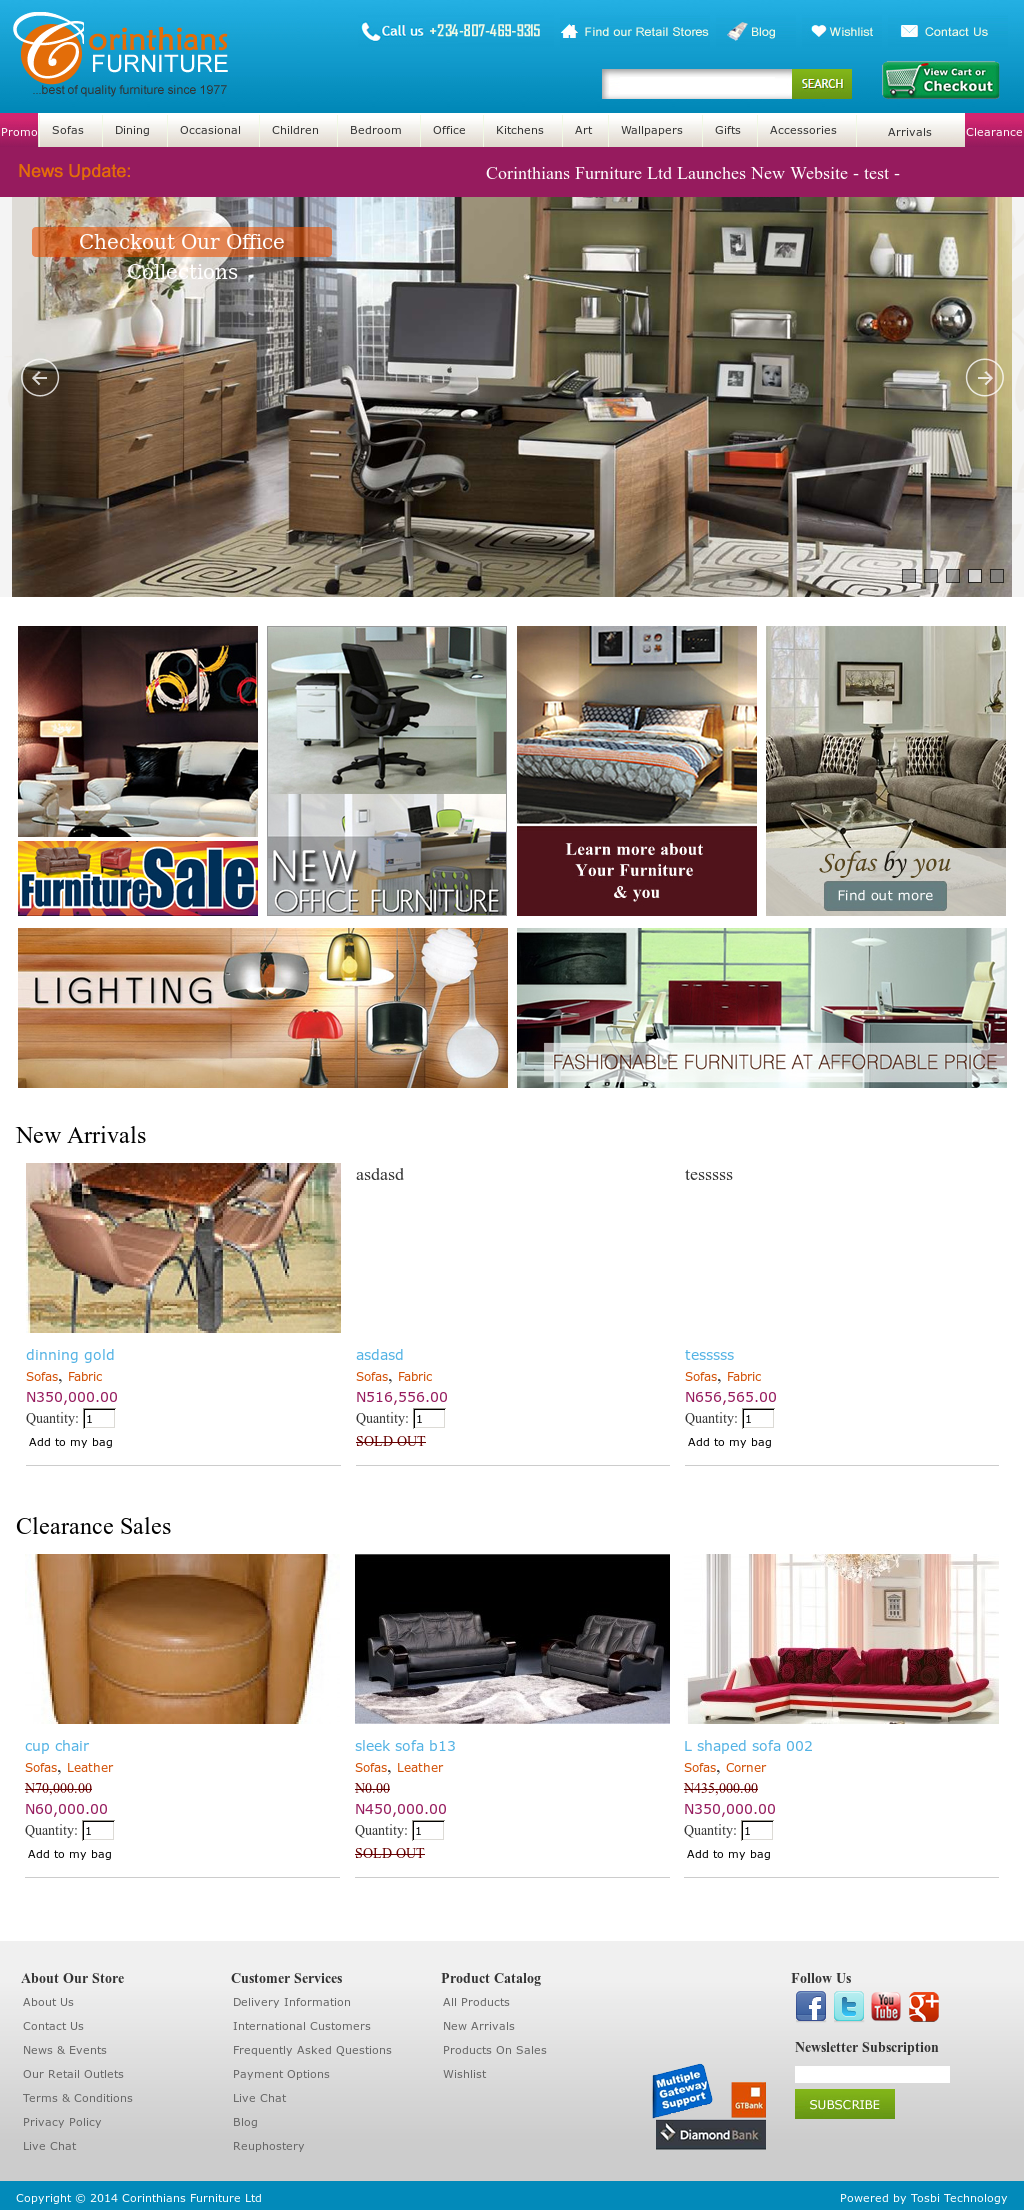 Corinthians Furniture Website History